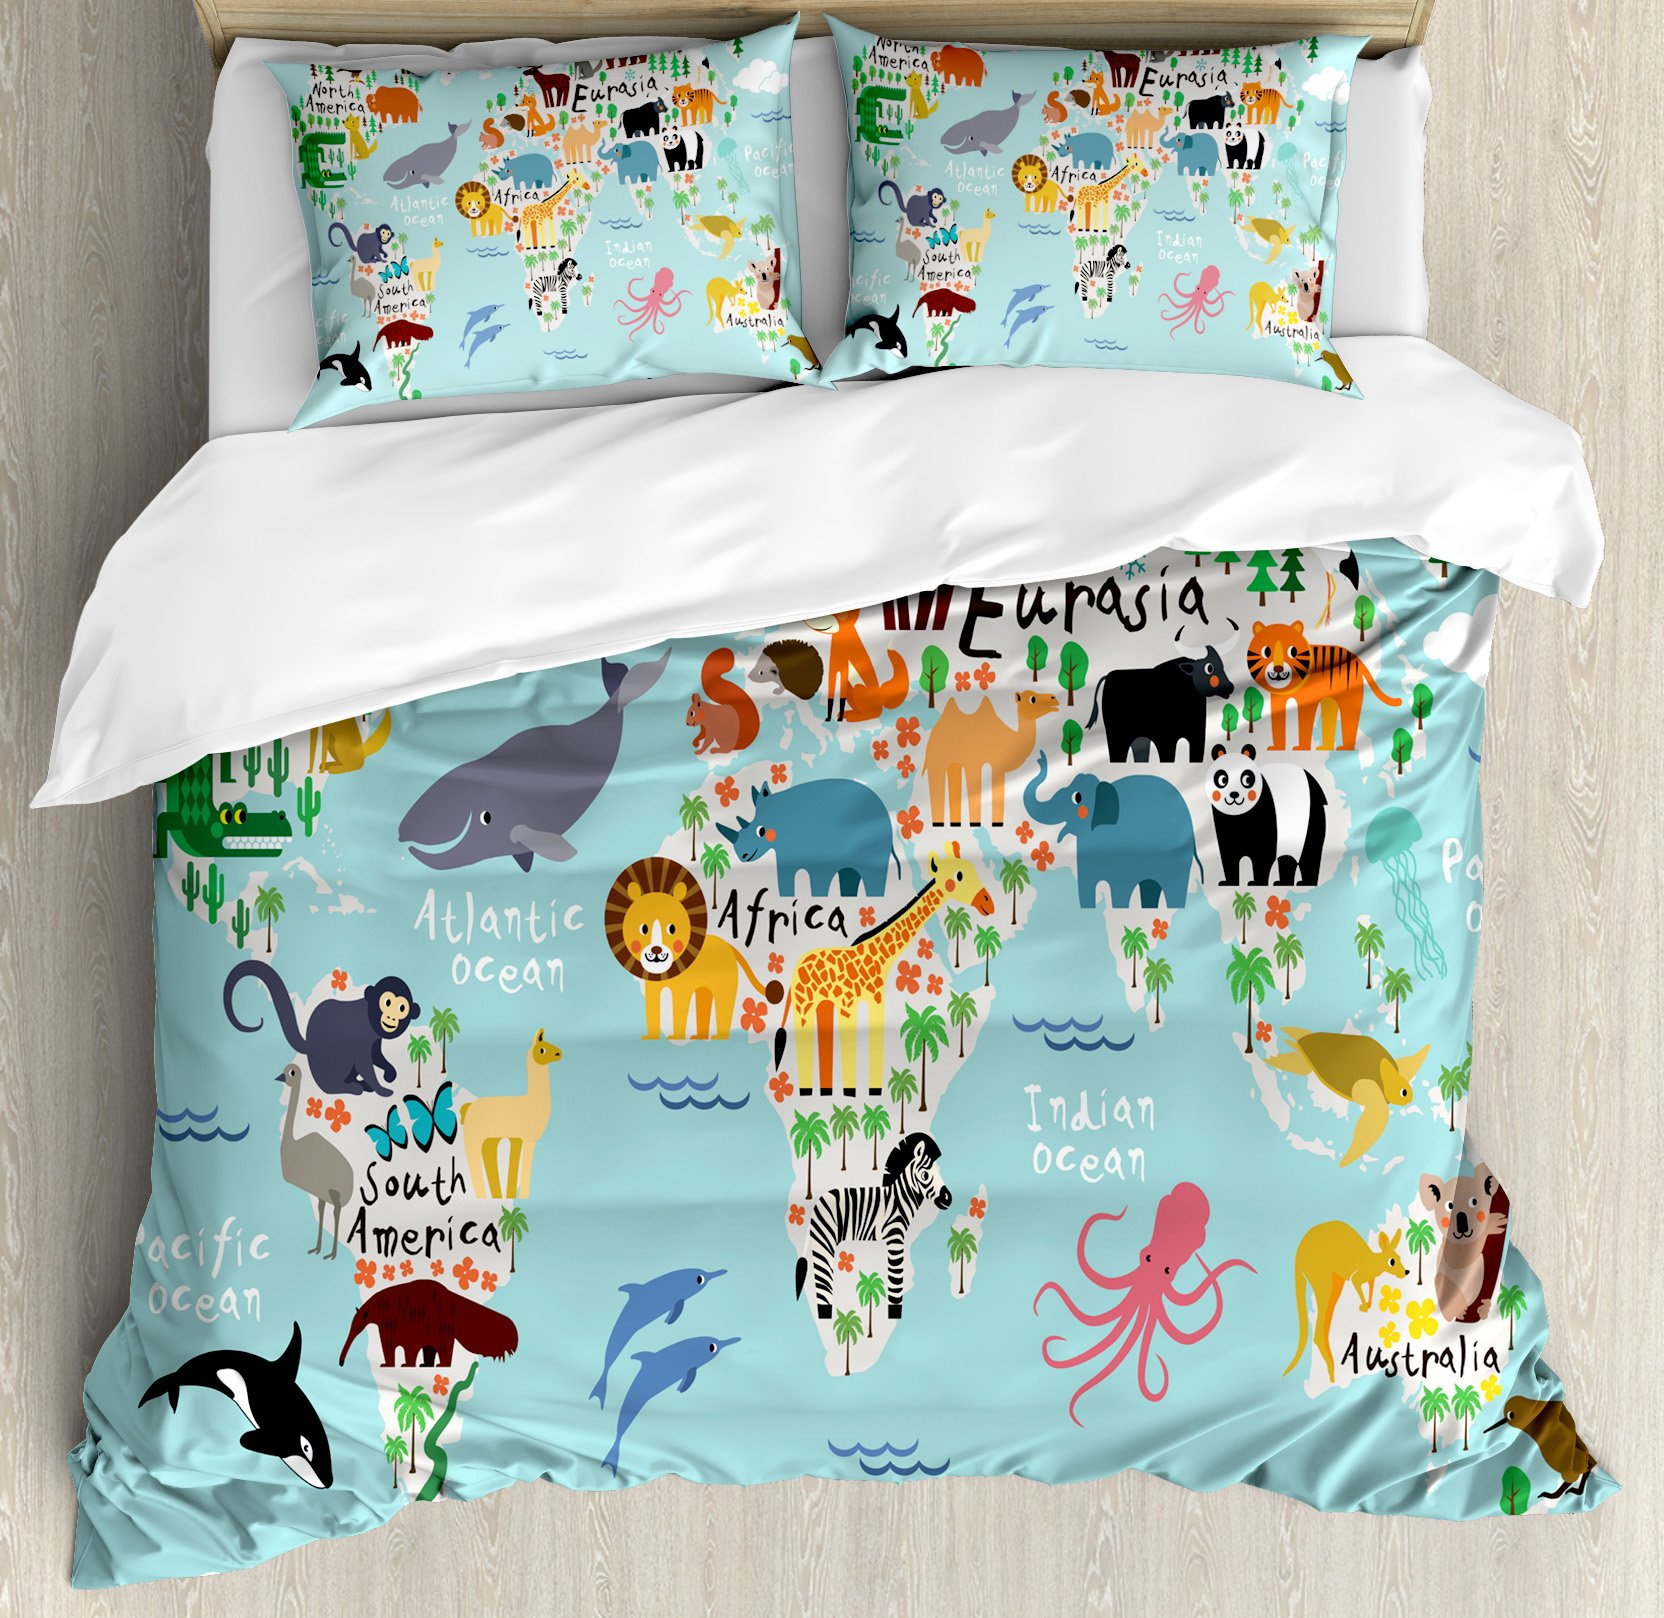 Kids King Size Duvet Cover Set by Ambesonne, Educational World Map Africa Camel America Lama Alligator Ocean Australia Koala Print, Decorative 3 Piece Bedding Set with 2 Pillow Shams by Ambesonne